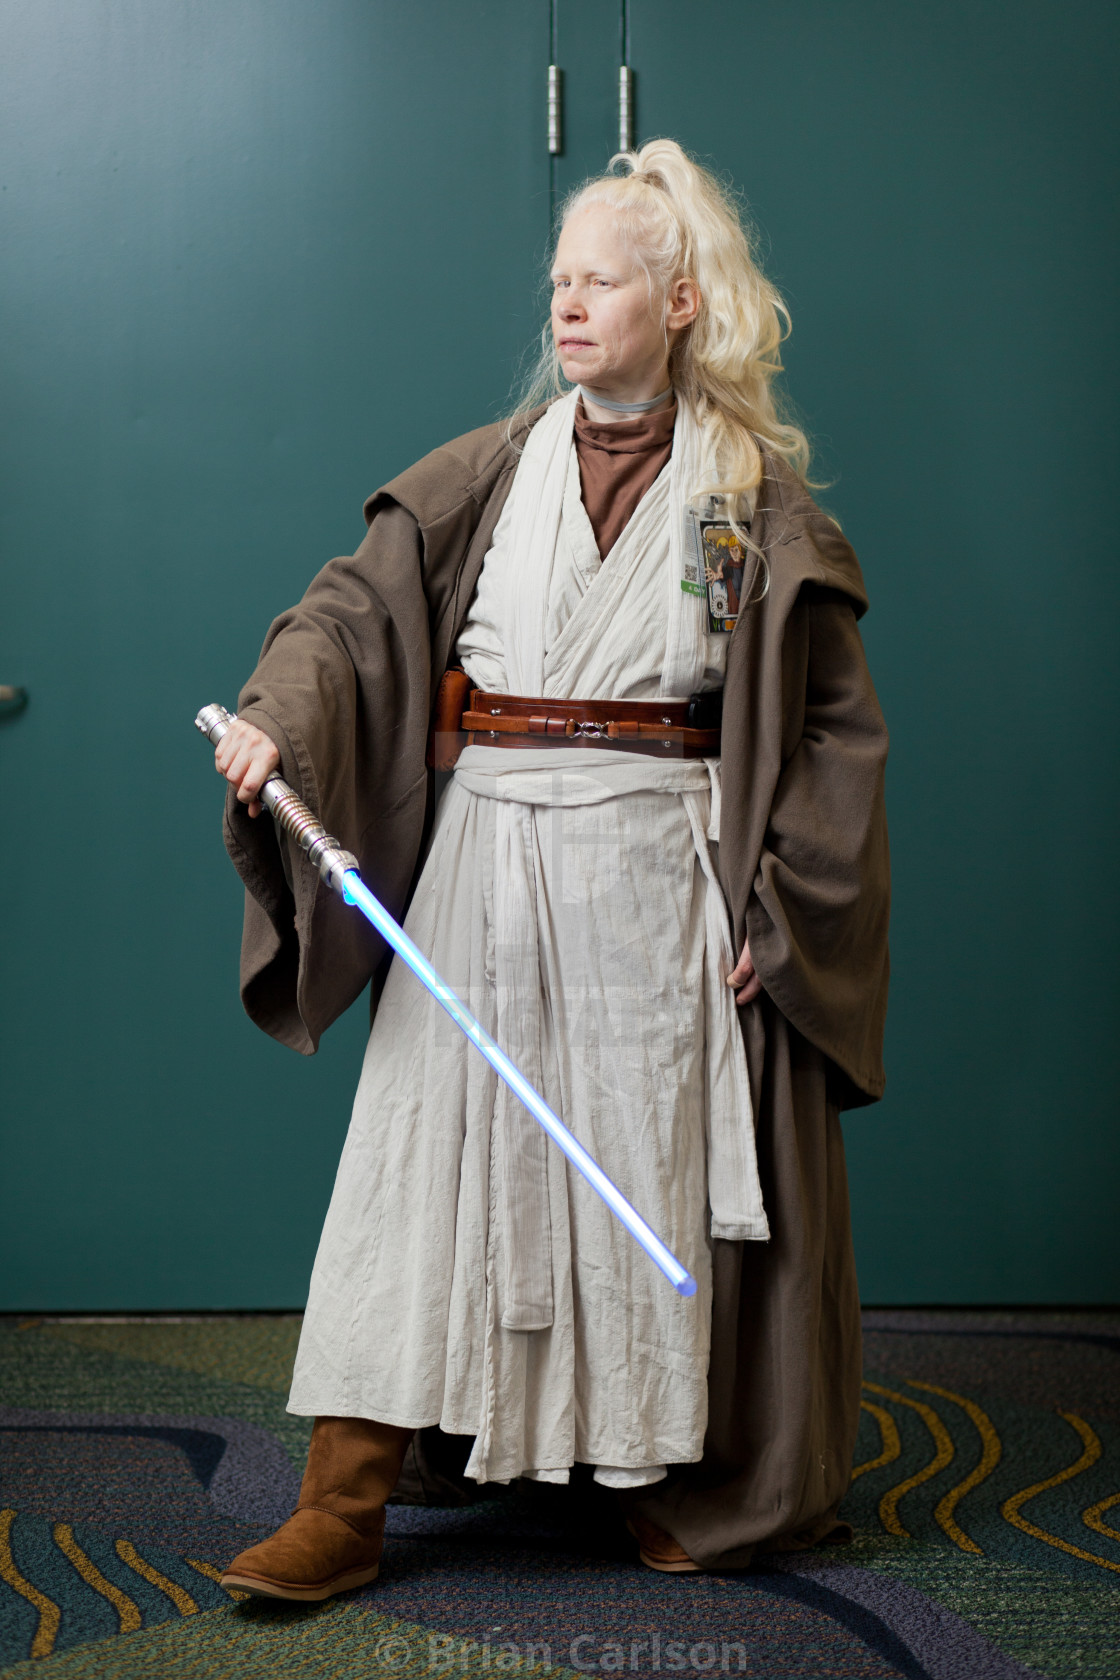 """""""Woman poses at Star Wars Celebration at Orange County Convention Center in..."""" stock image"""